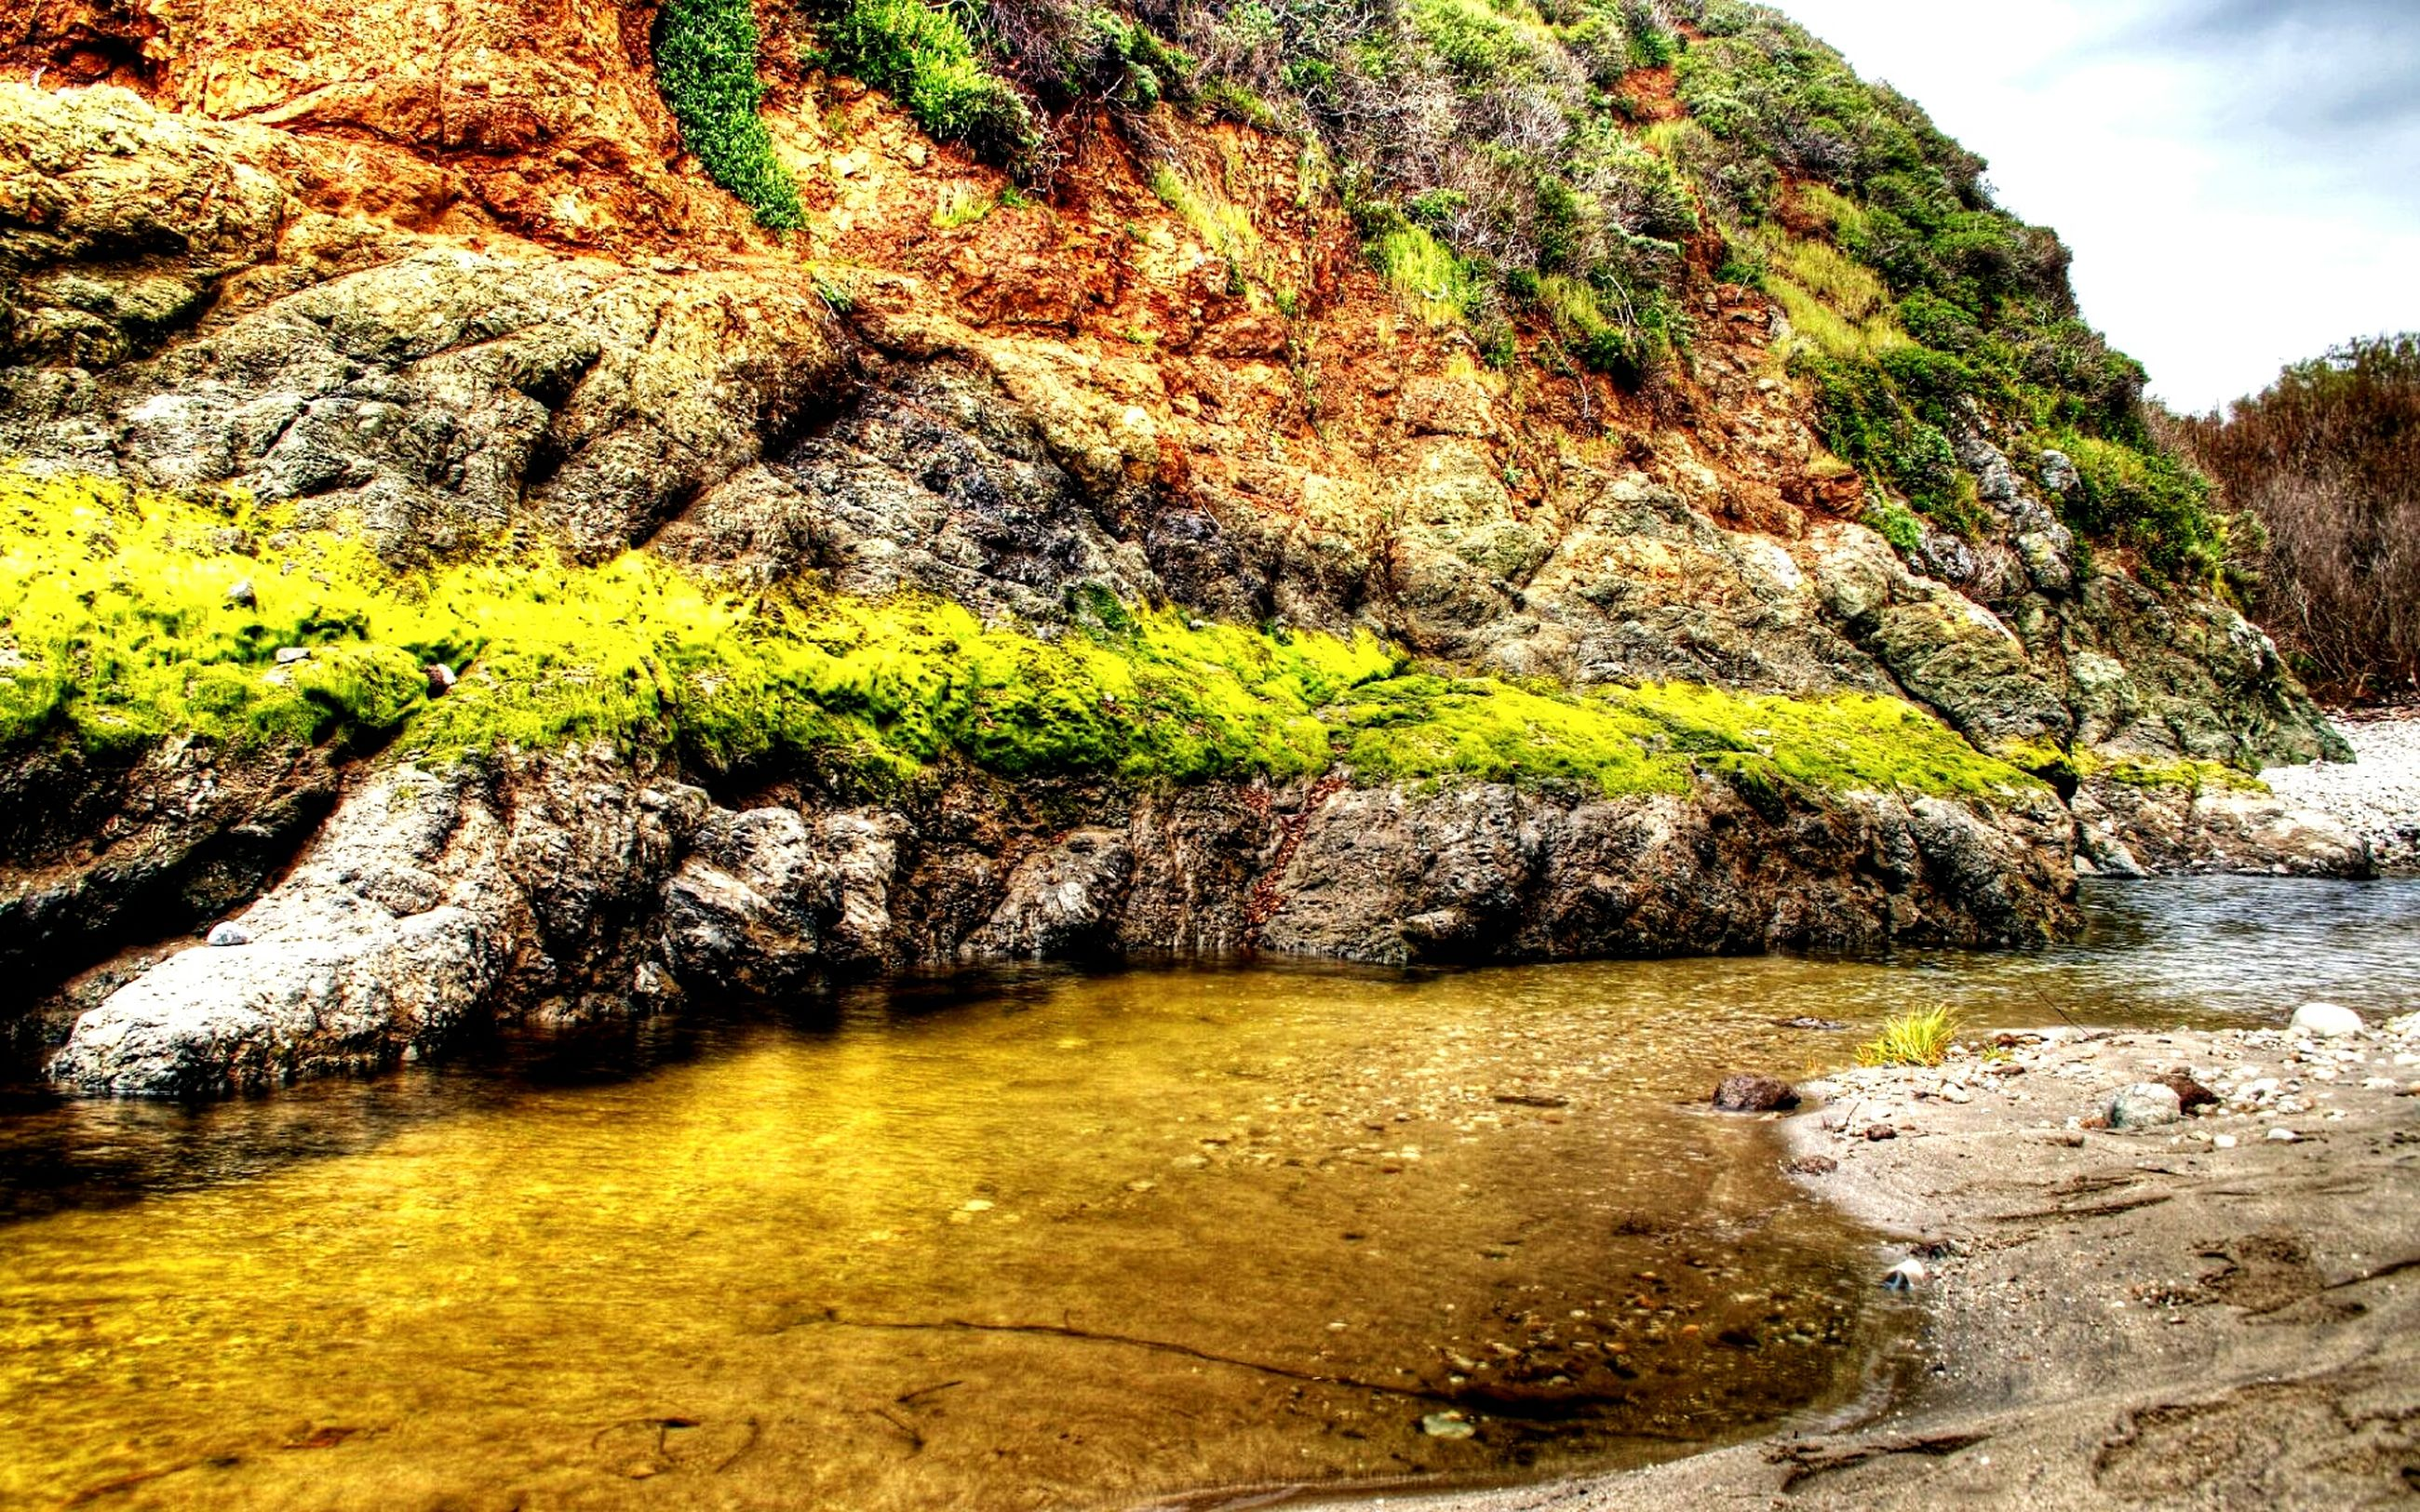 water, rock - object, nature, beauty in nature, tranquility, tranquil scene, scenics, rock formation, growth, plant, rock, river, tree, day, sky, outdoors, stream, grass, cliff, non-urban scene